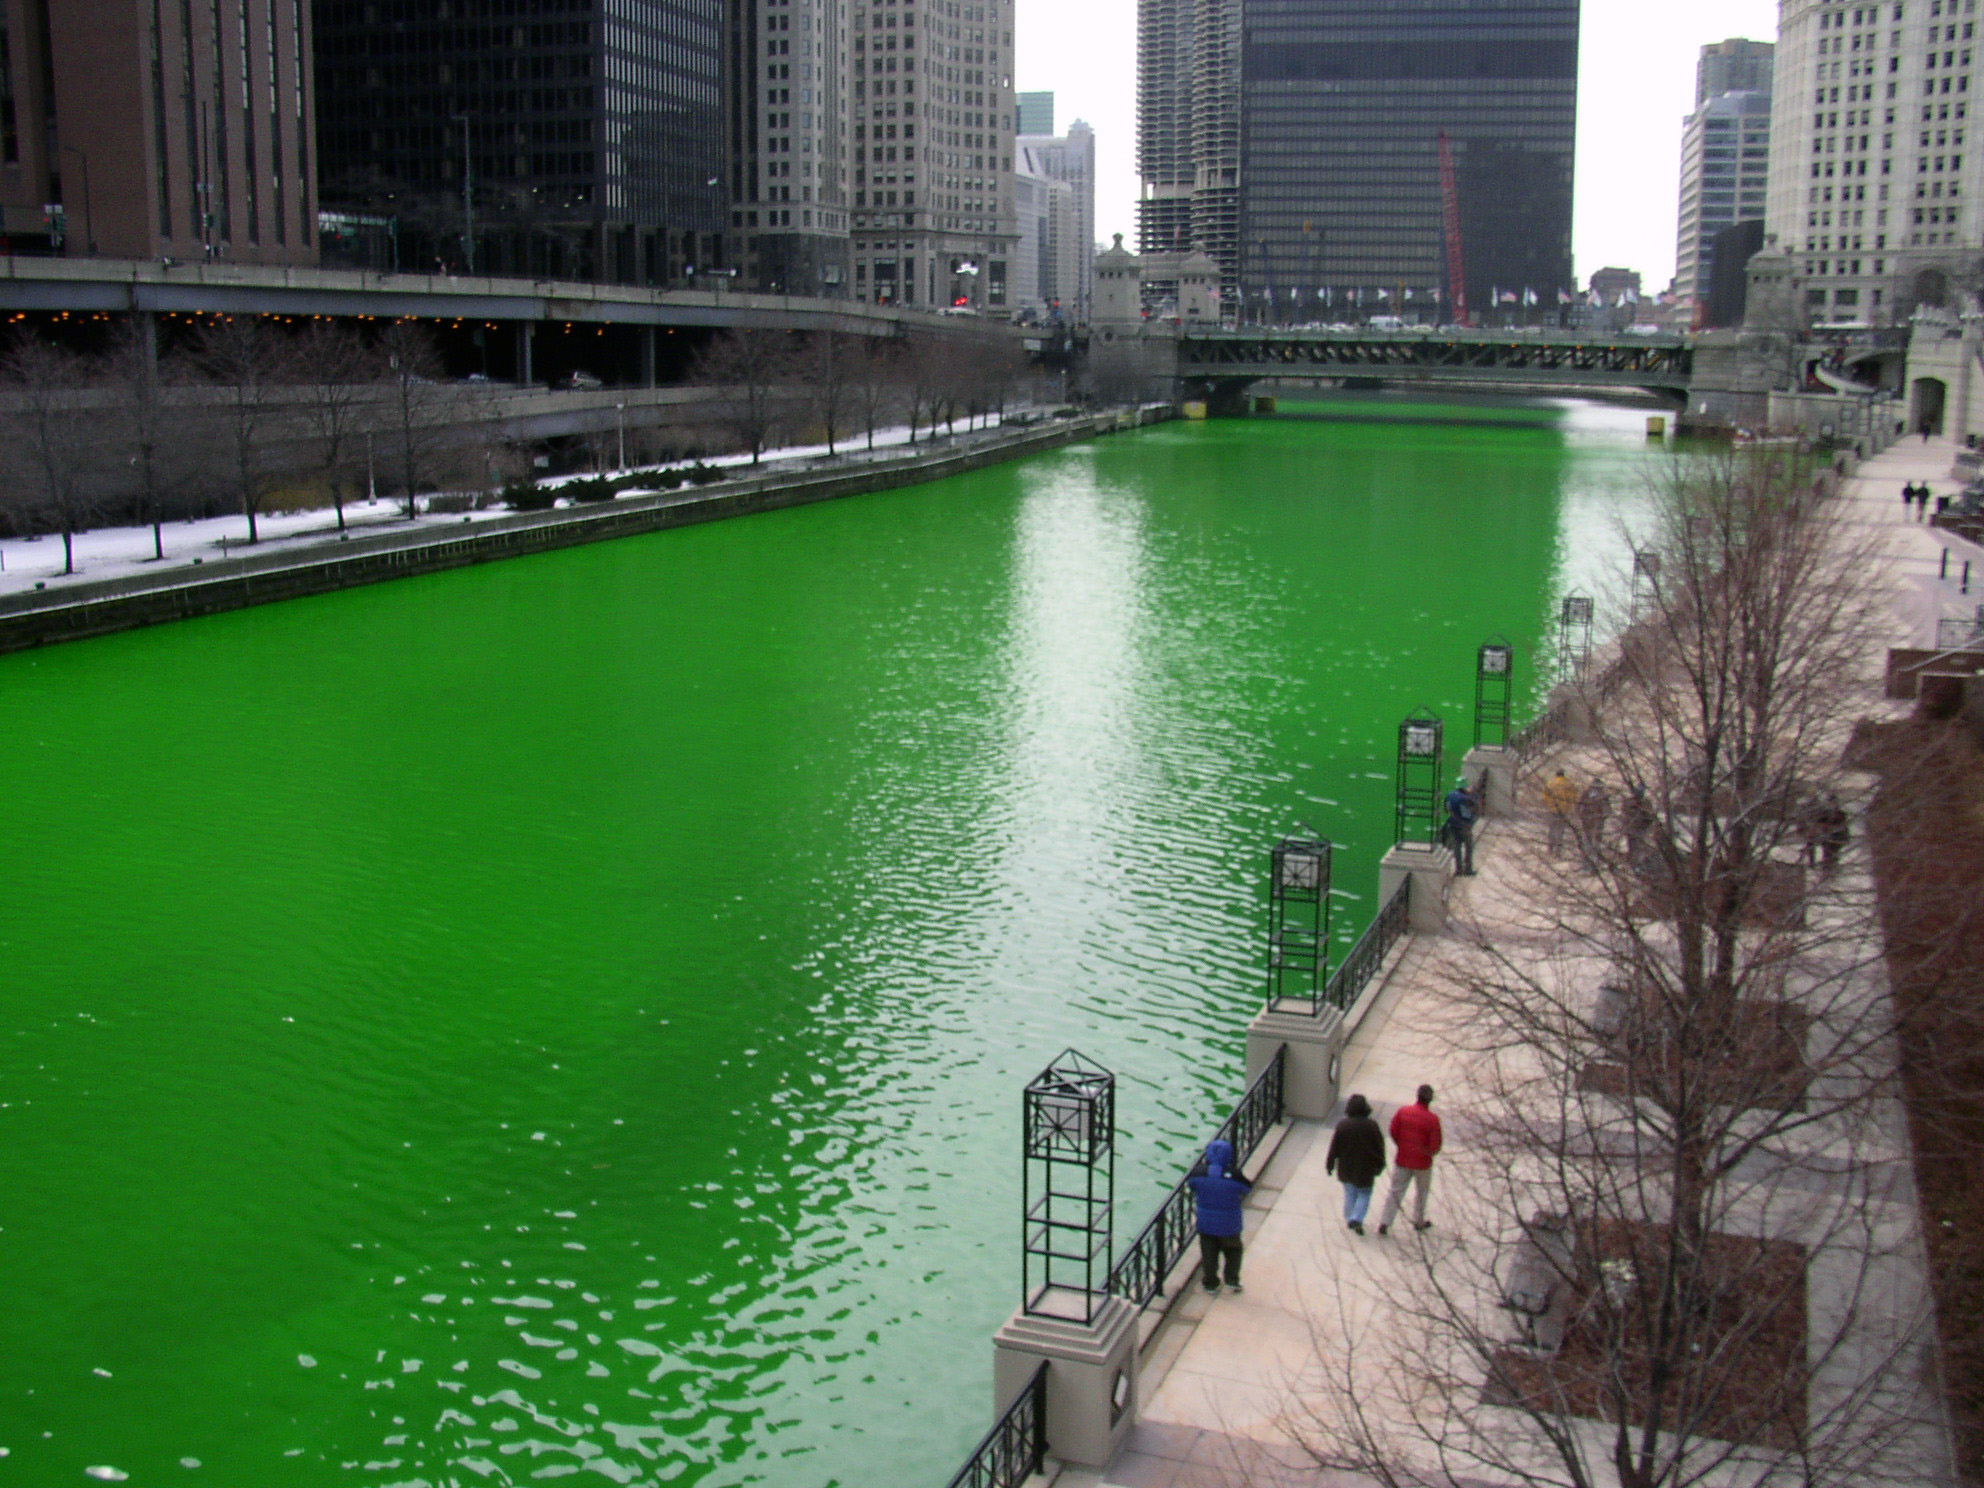 https://i2.wp.com/upload.wikimedia.org/wikipedia/commons/b/b6/Chicago_River_dyed_green%2C_focus_on_river.jpg